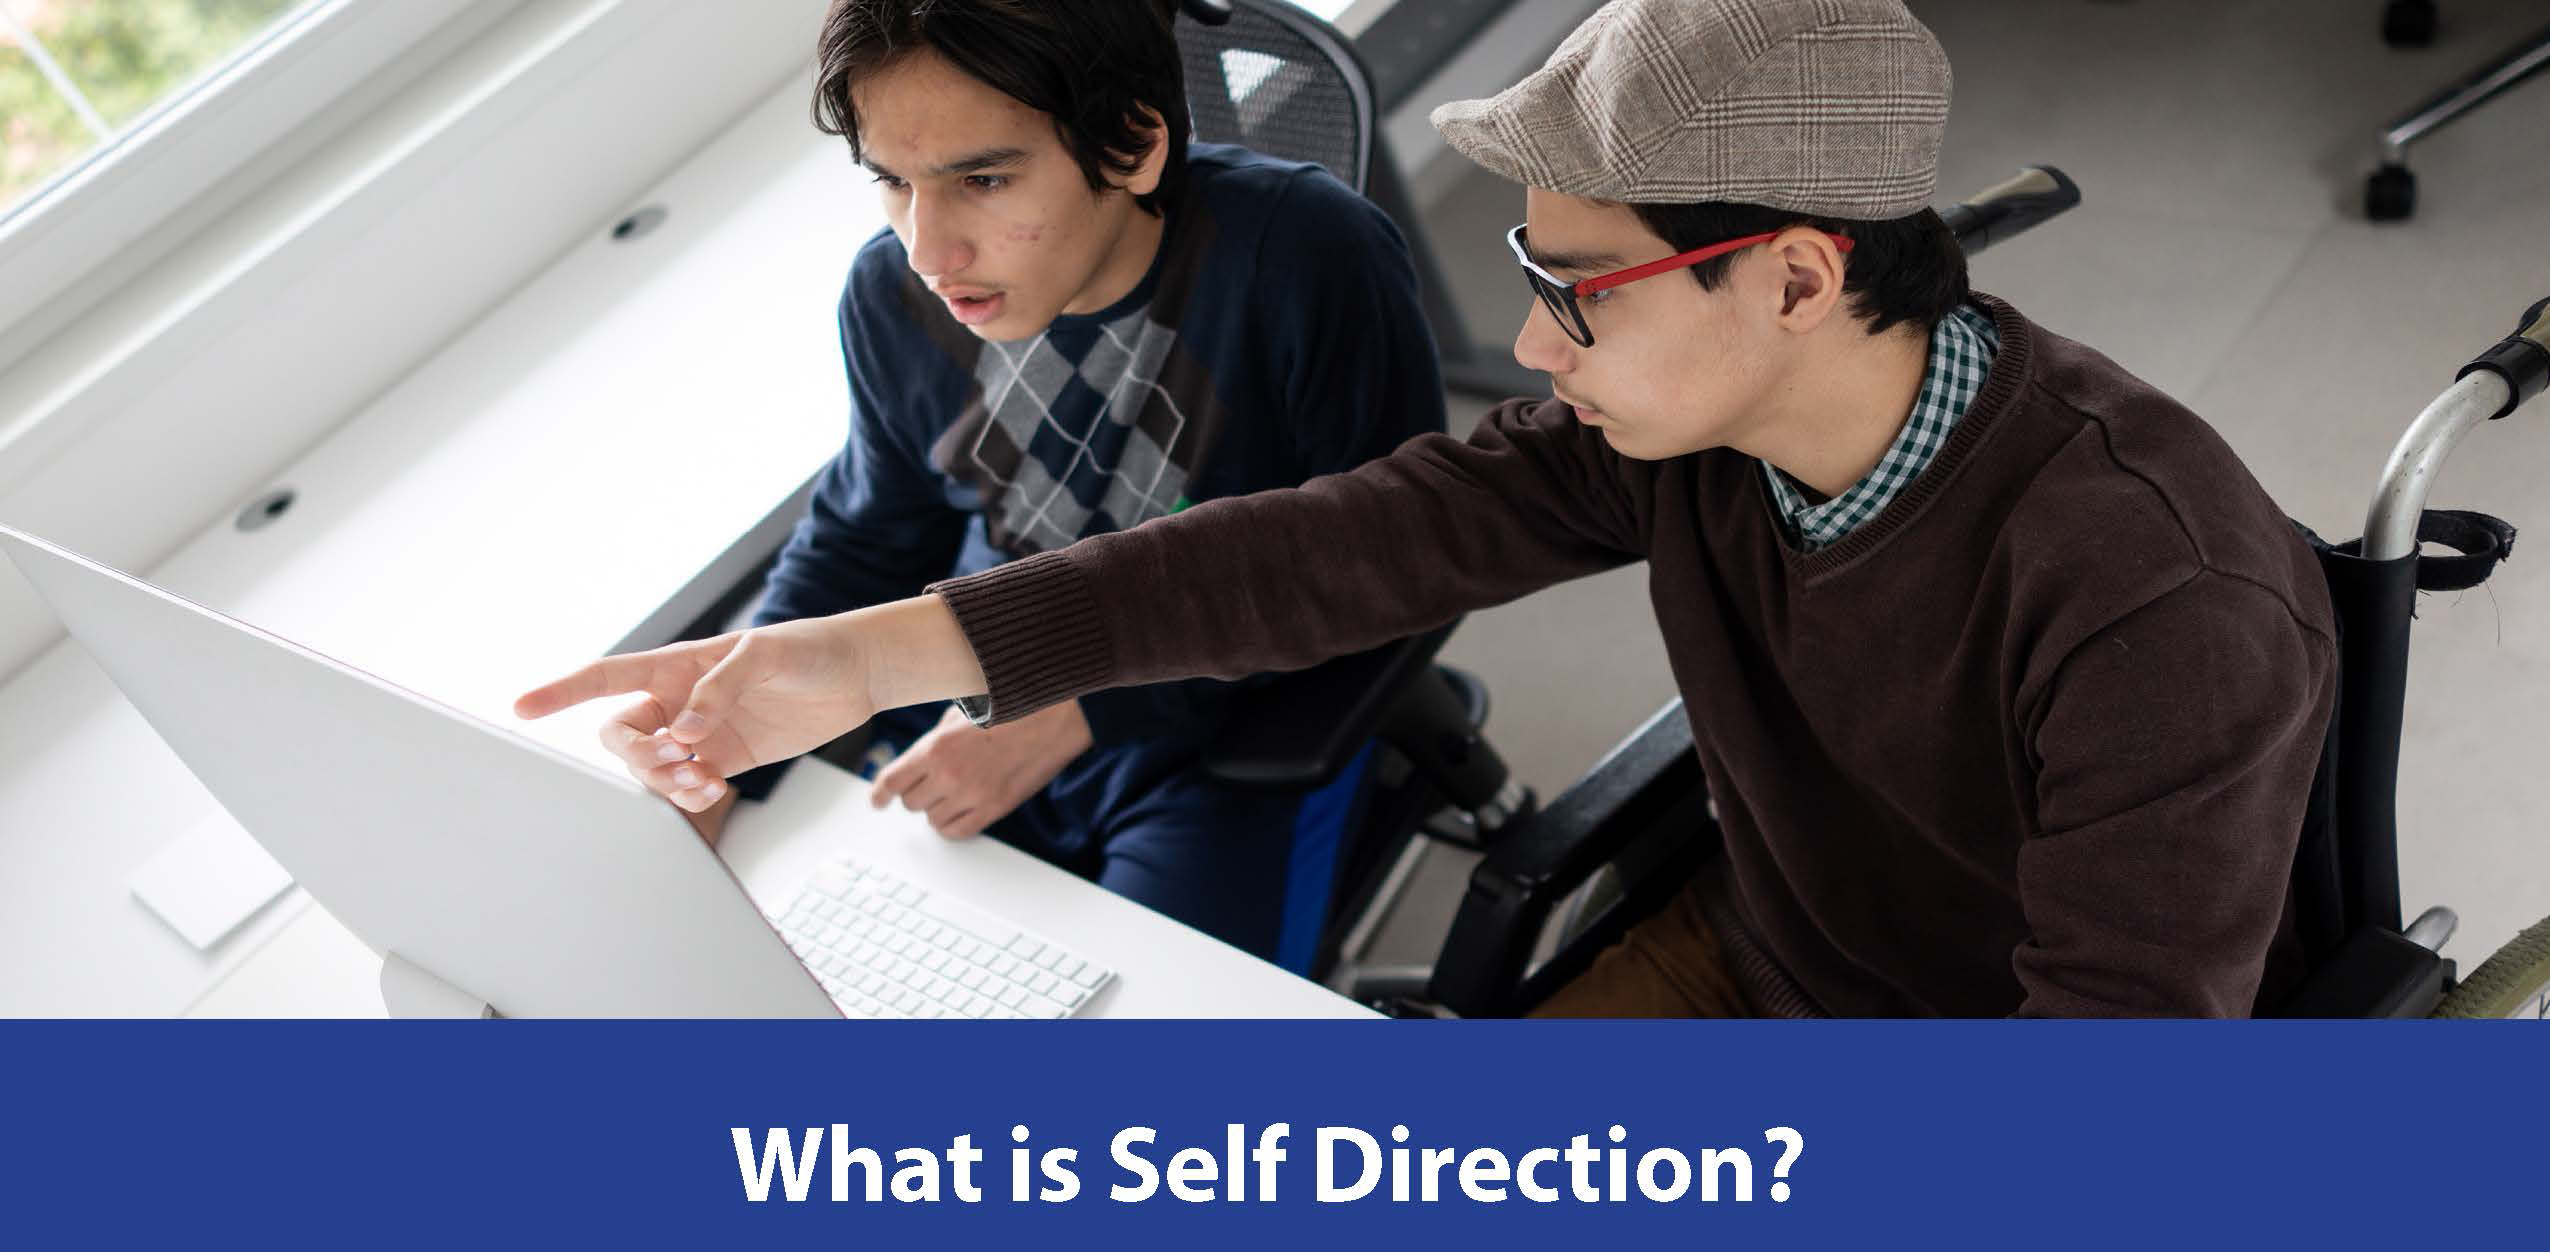 photo of two students sitting at a desk looking at a computer and the words What is Self Direction? Underneath.